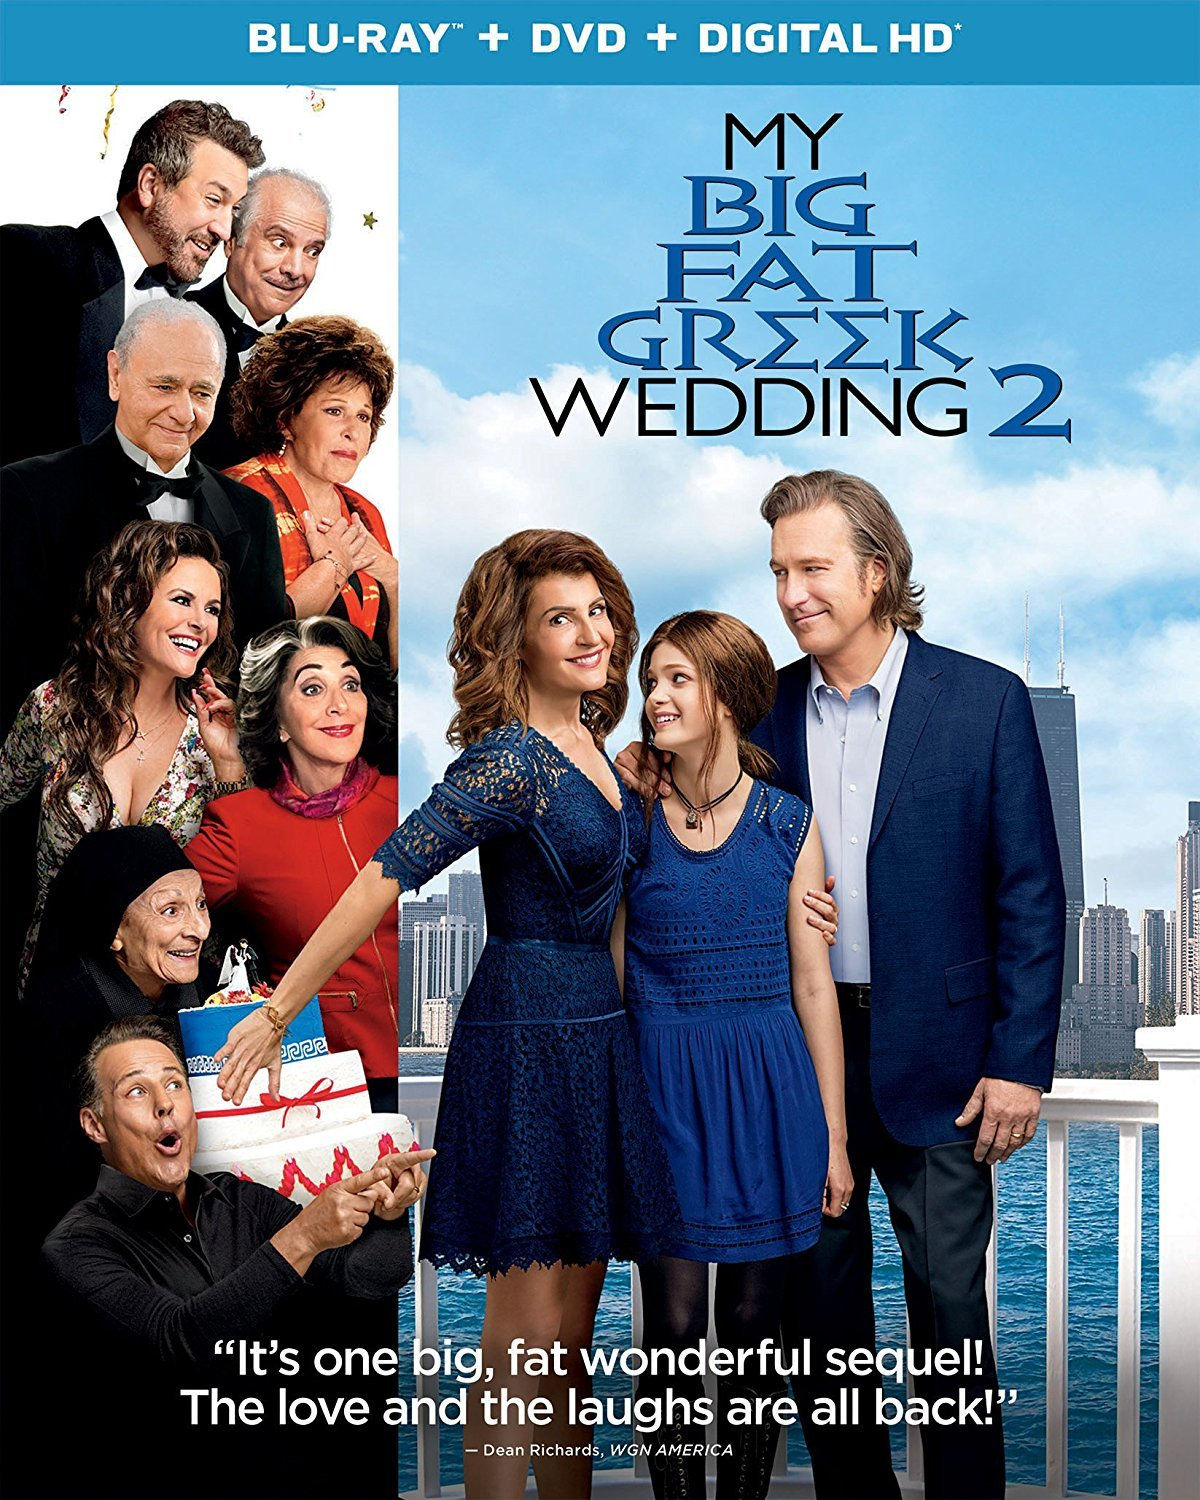 My Big Fat Greek Wedding 2 (Blu-ray + DVD)